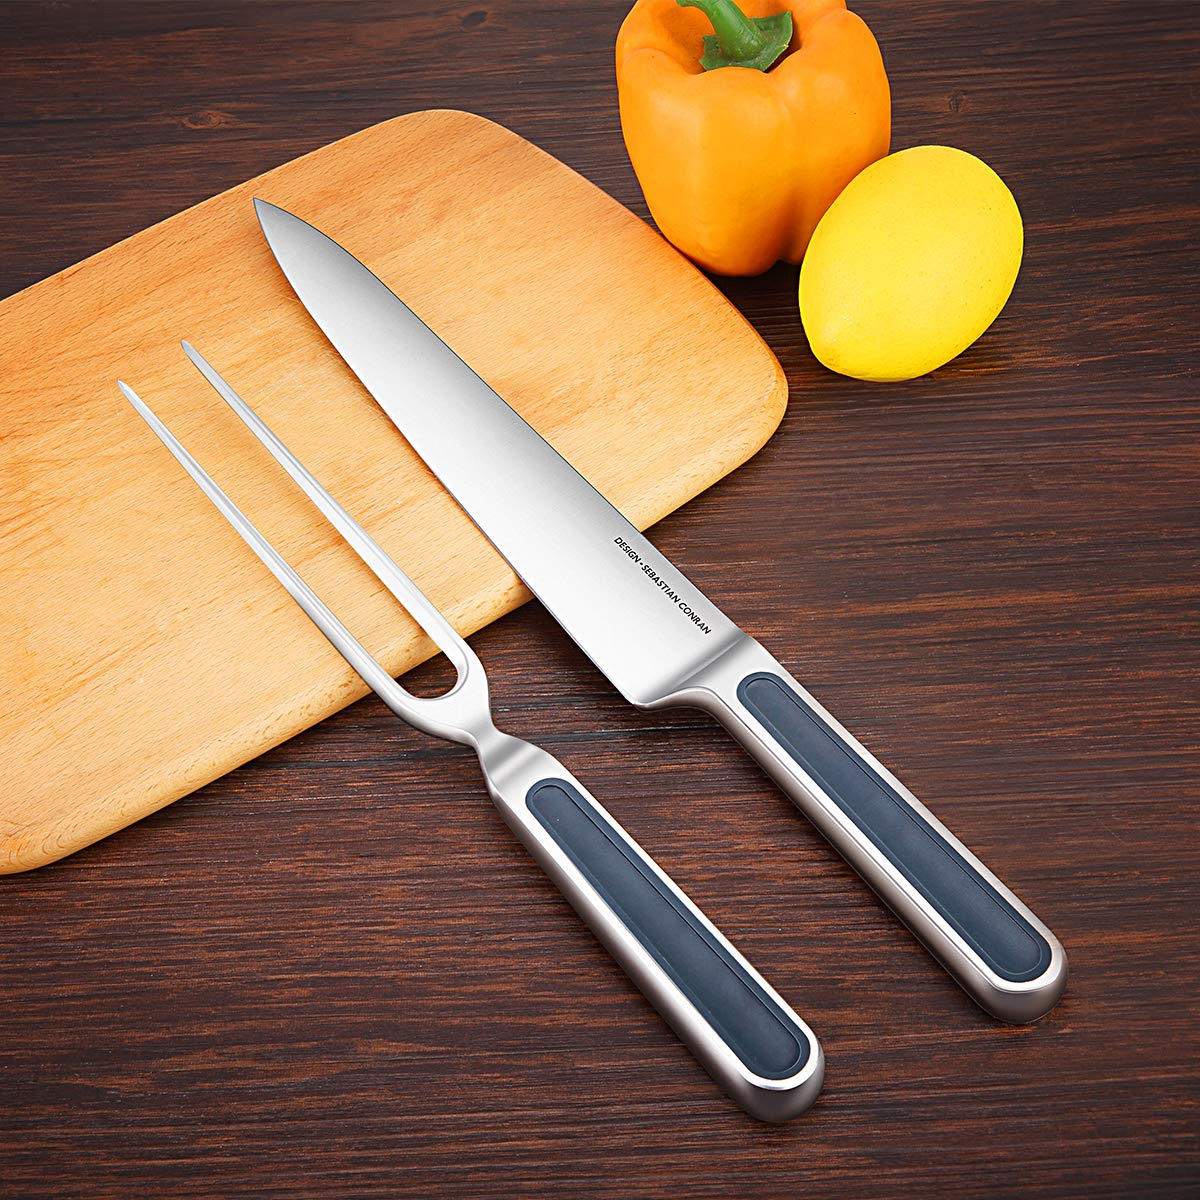 Universal Expert Carving Knife and Fork Set 2-Piece Cutlery Sets,BBQ Knives, Extended Fork for Meat, Roast, Ham, and Turkey, 8.8 Inch Stainless Steel Sharpening Gourmet Knife& Fork/Chisel by Universal Expert (Image #2)